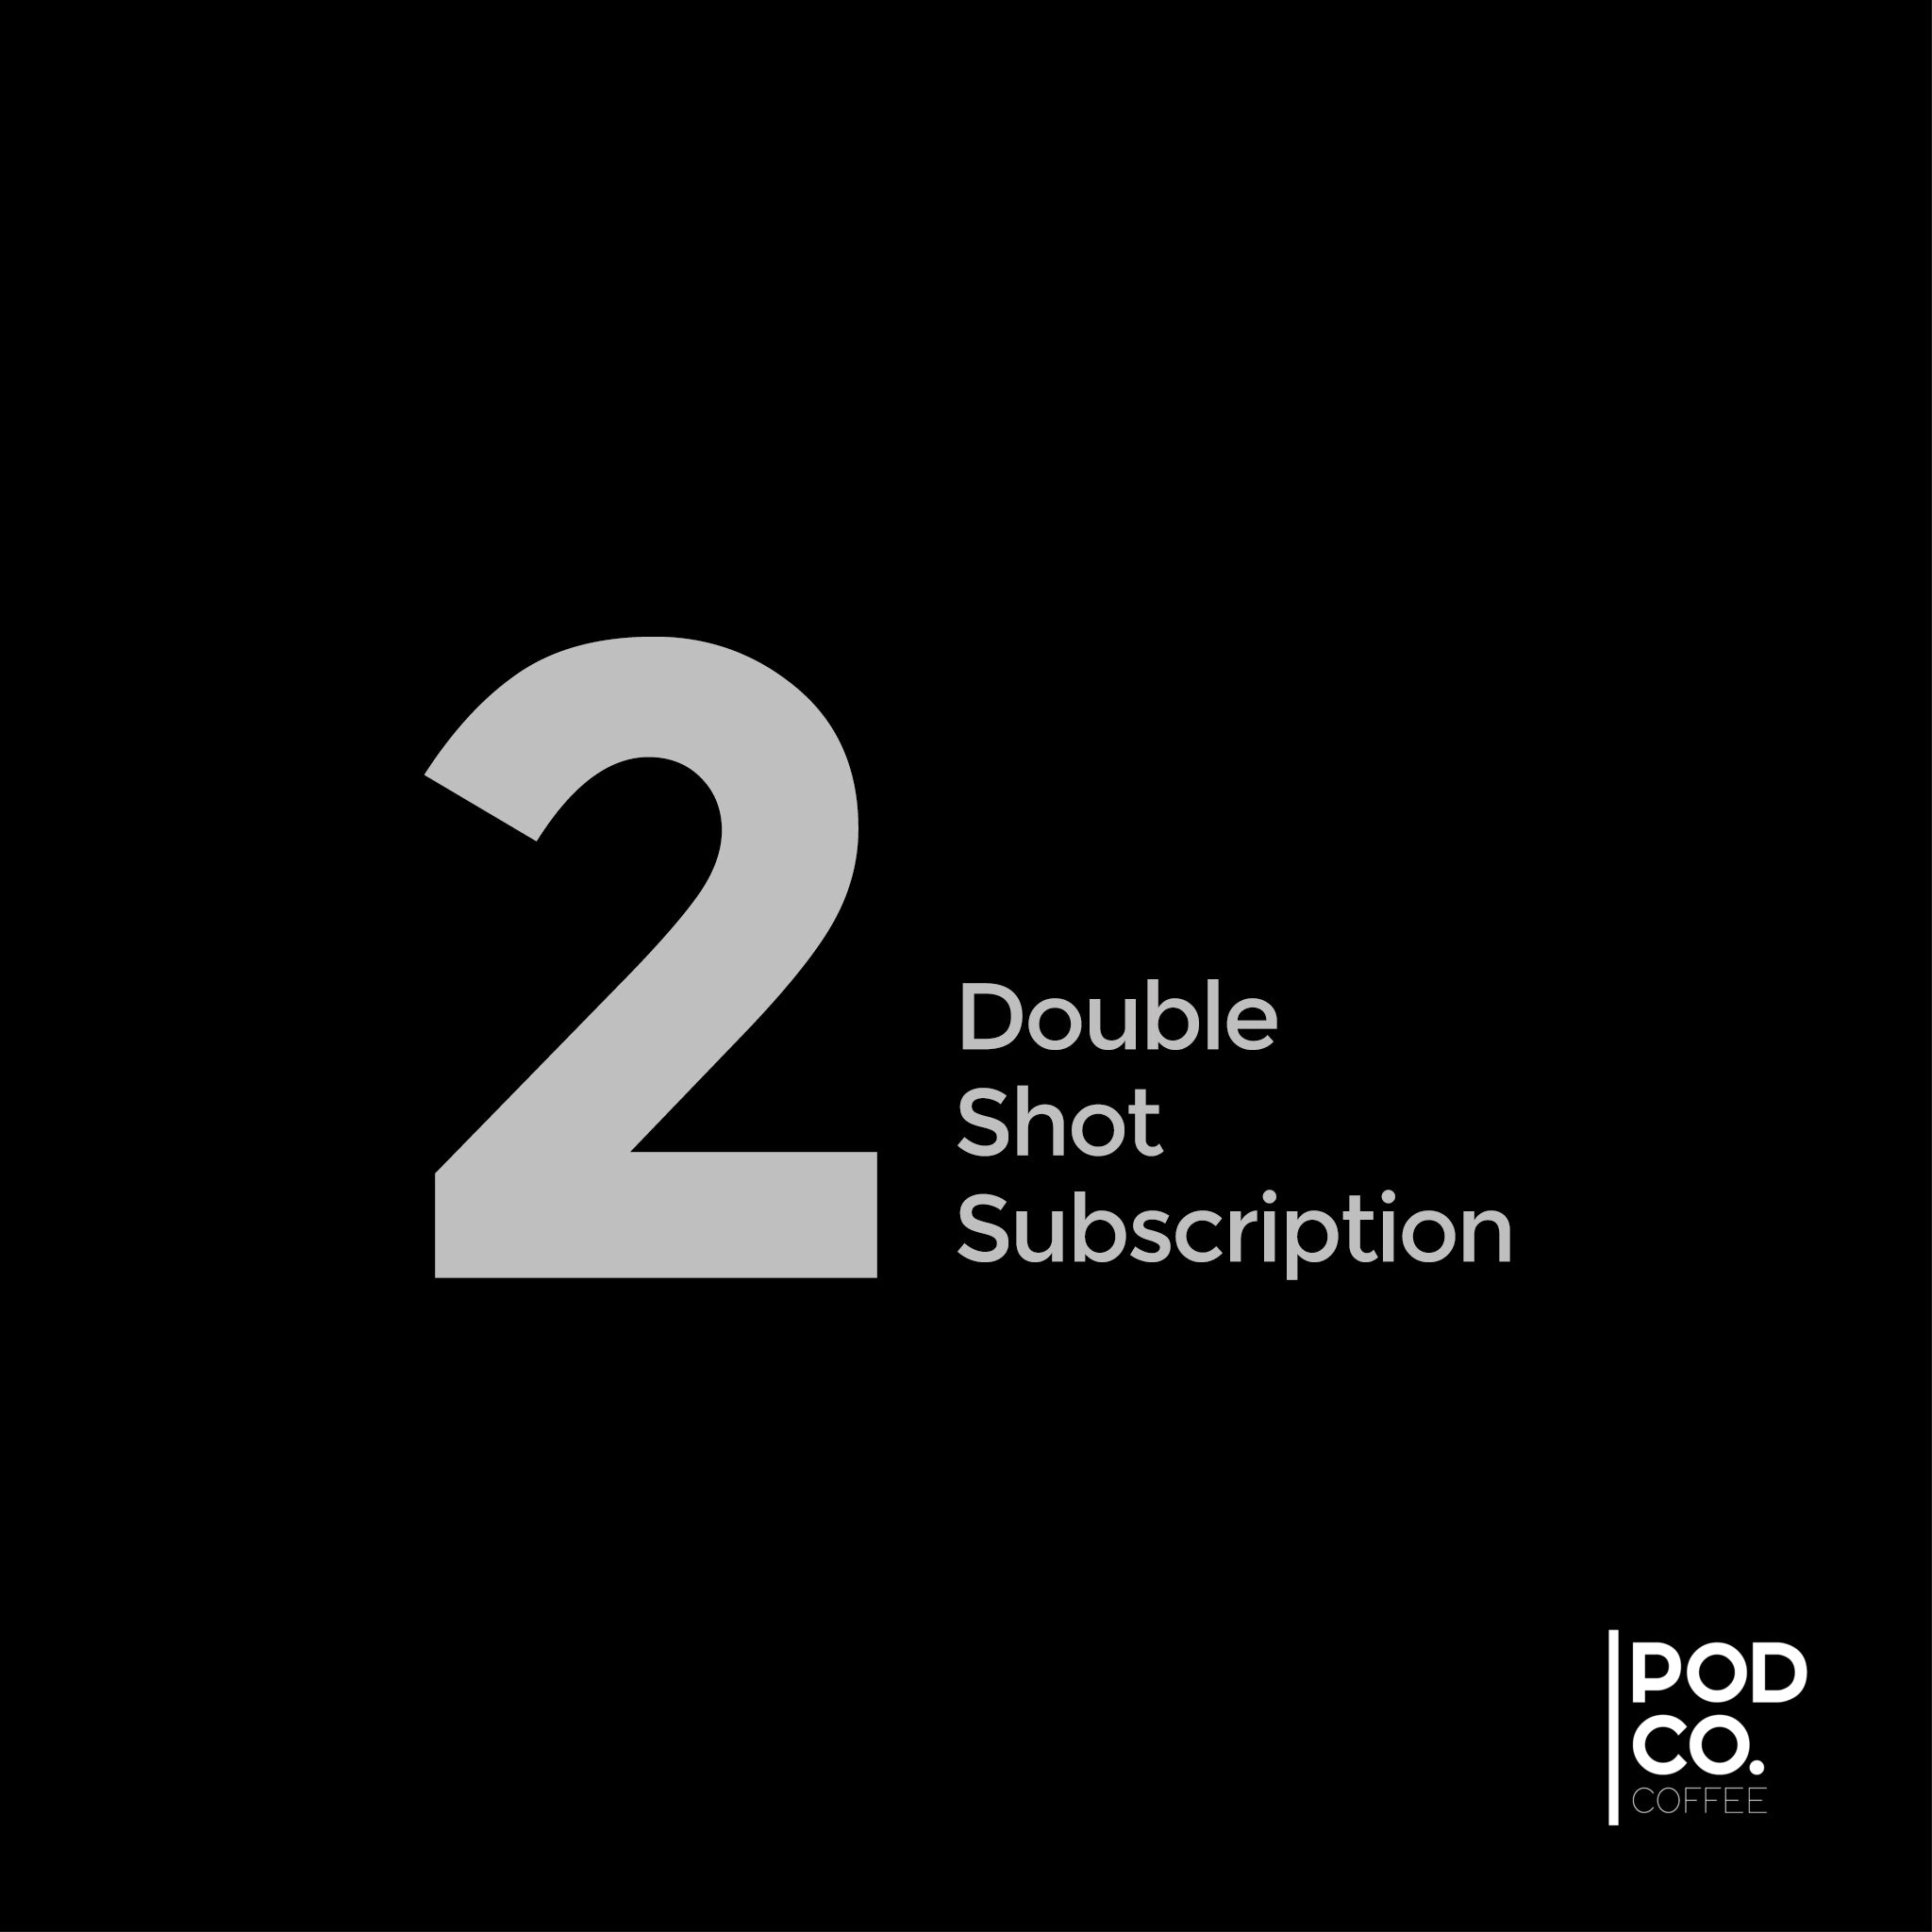 Double Shot Subscription